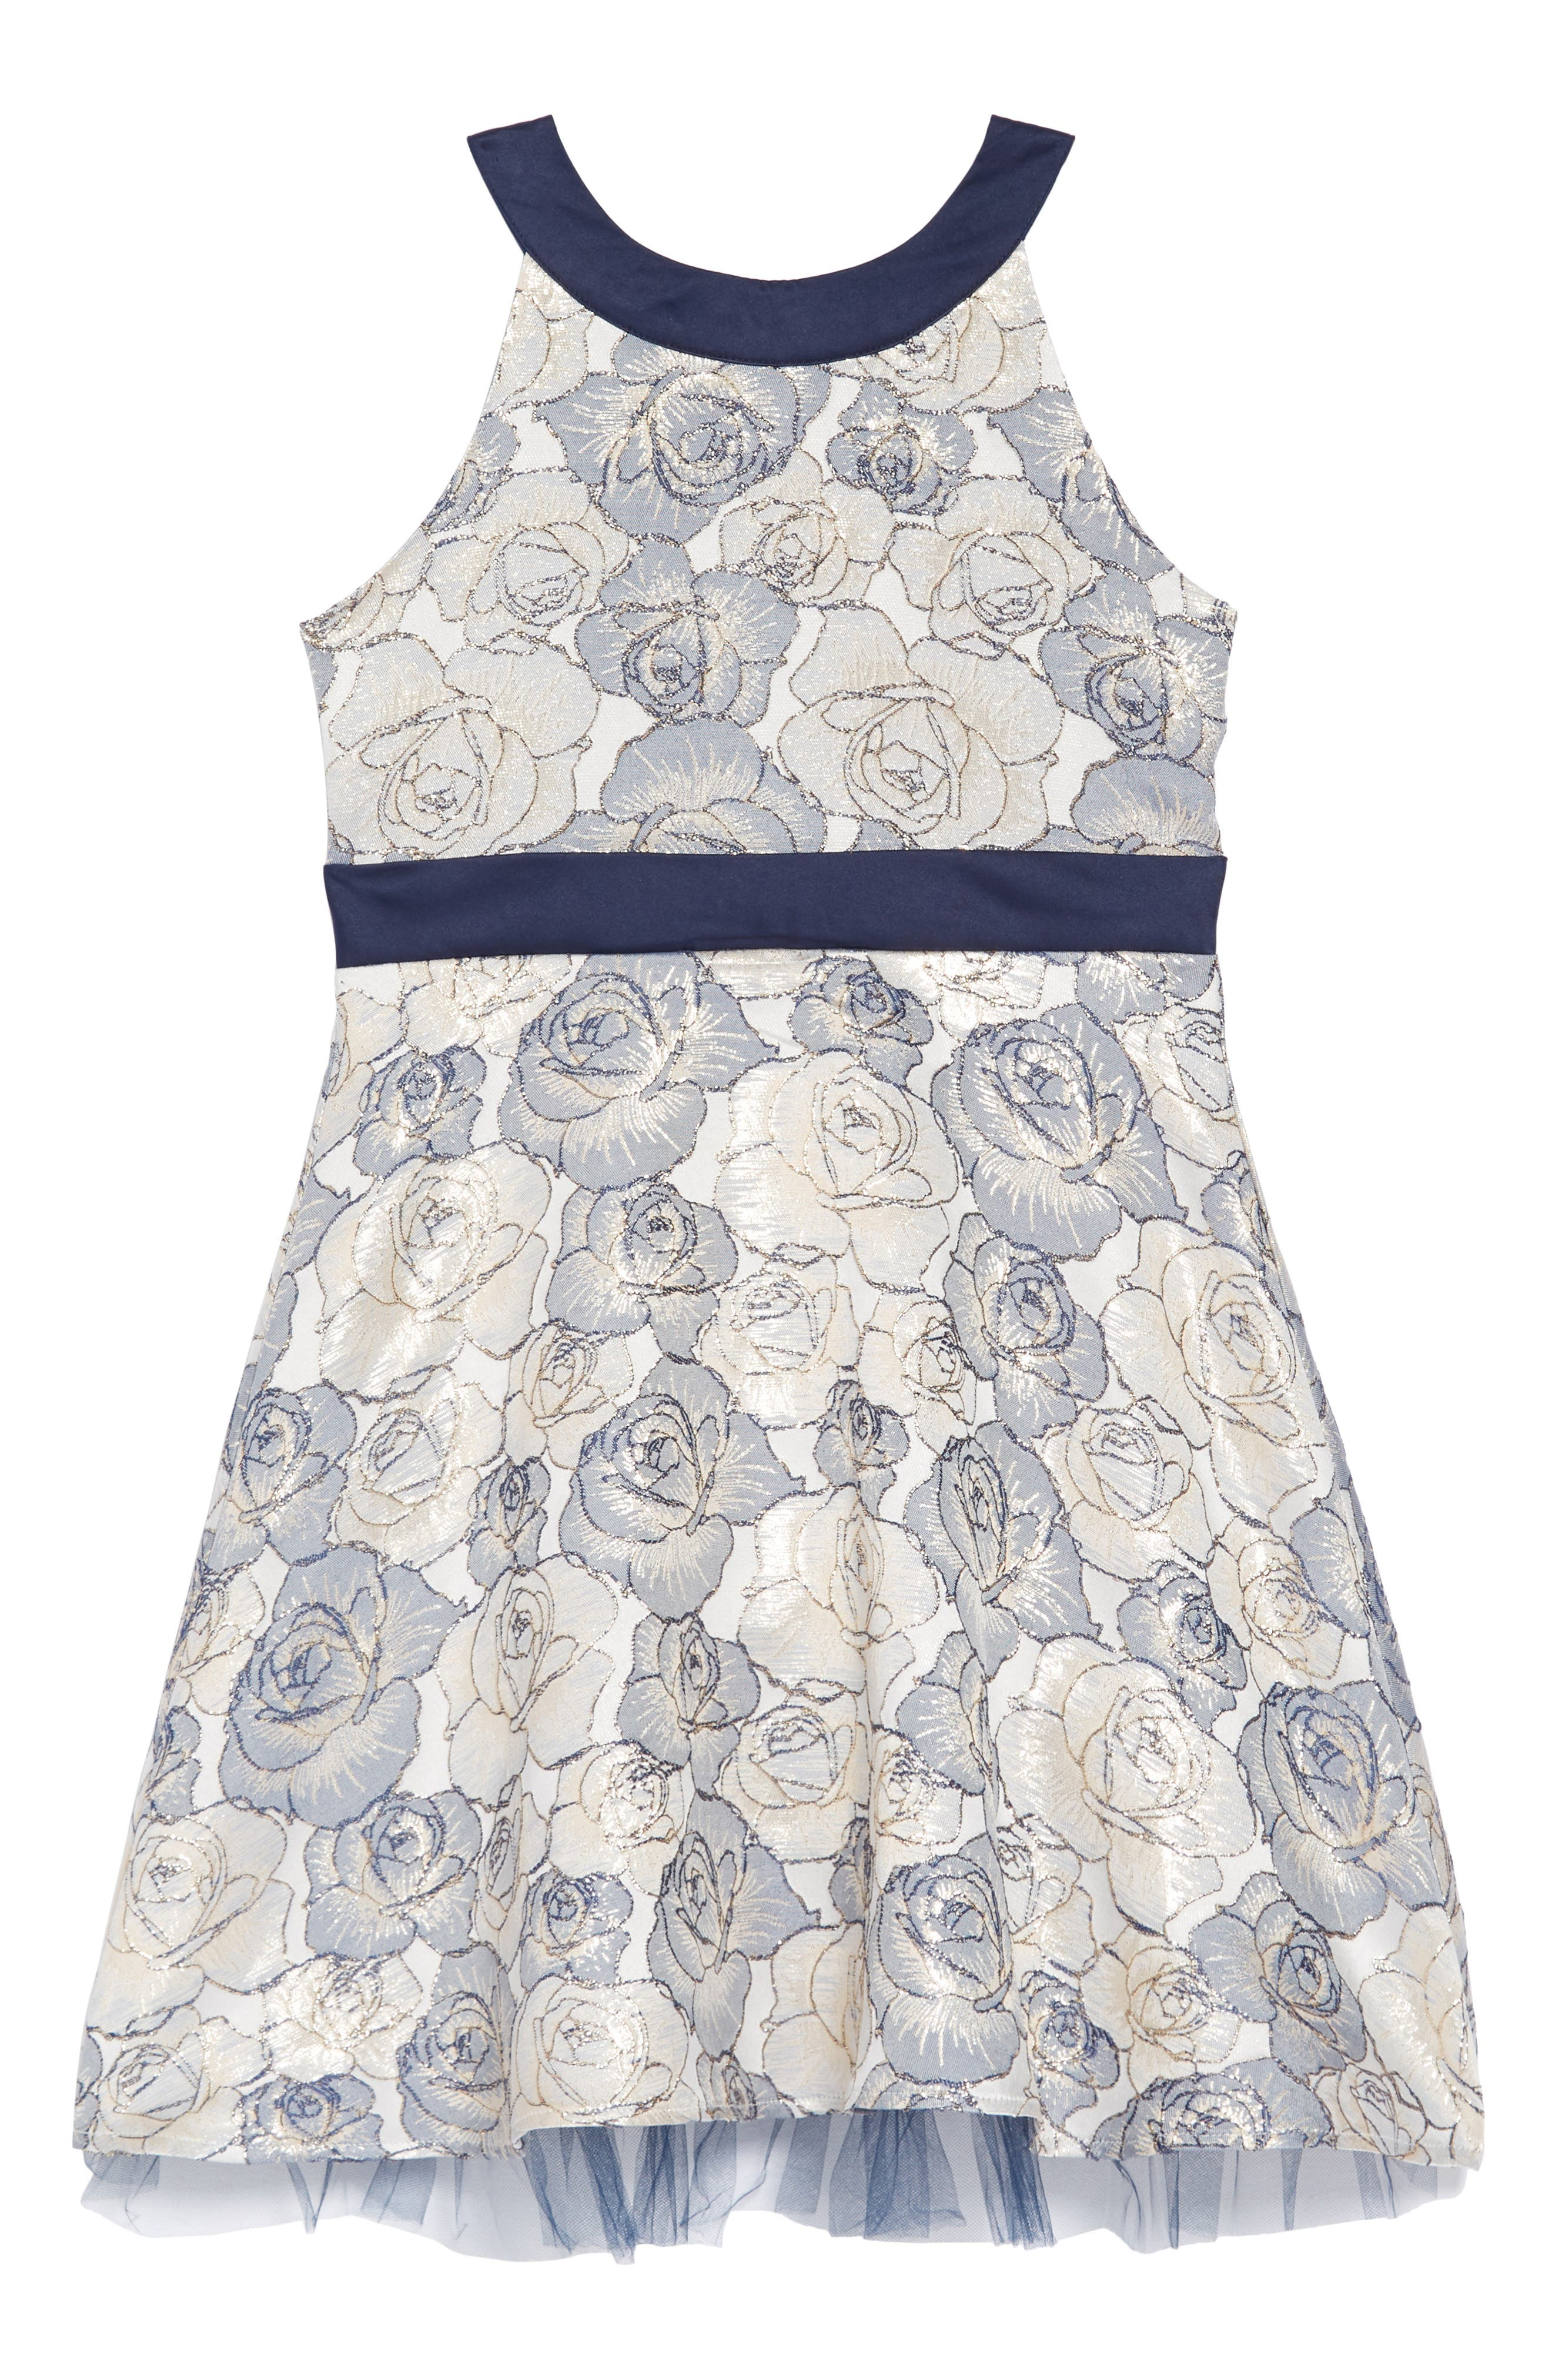 Floral Brocade Fit & Flare Dress,                             Main thumbnail 1, color,                             486